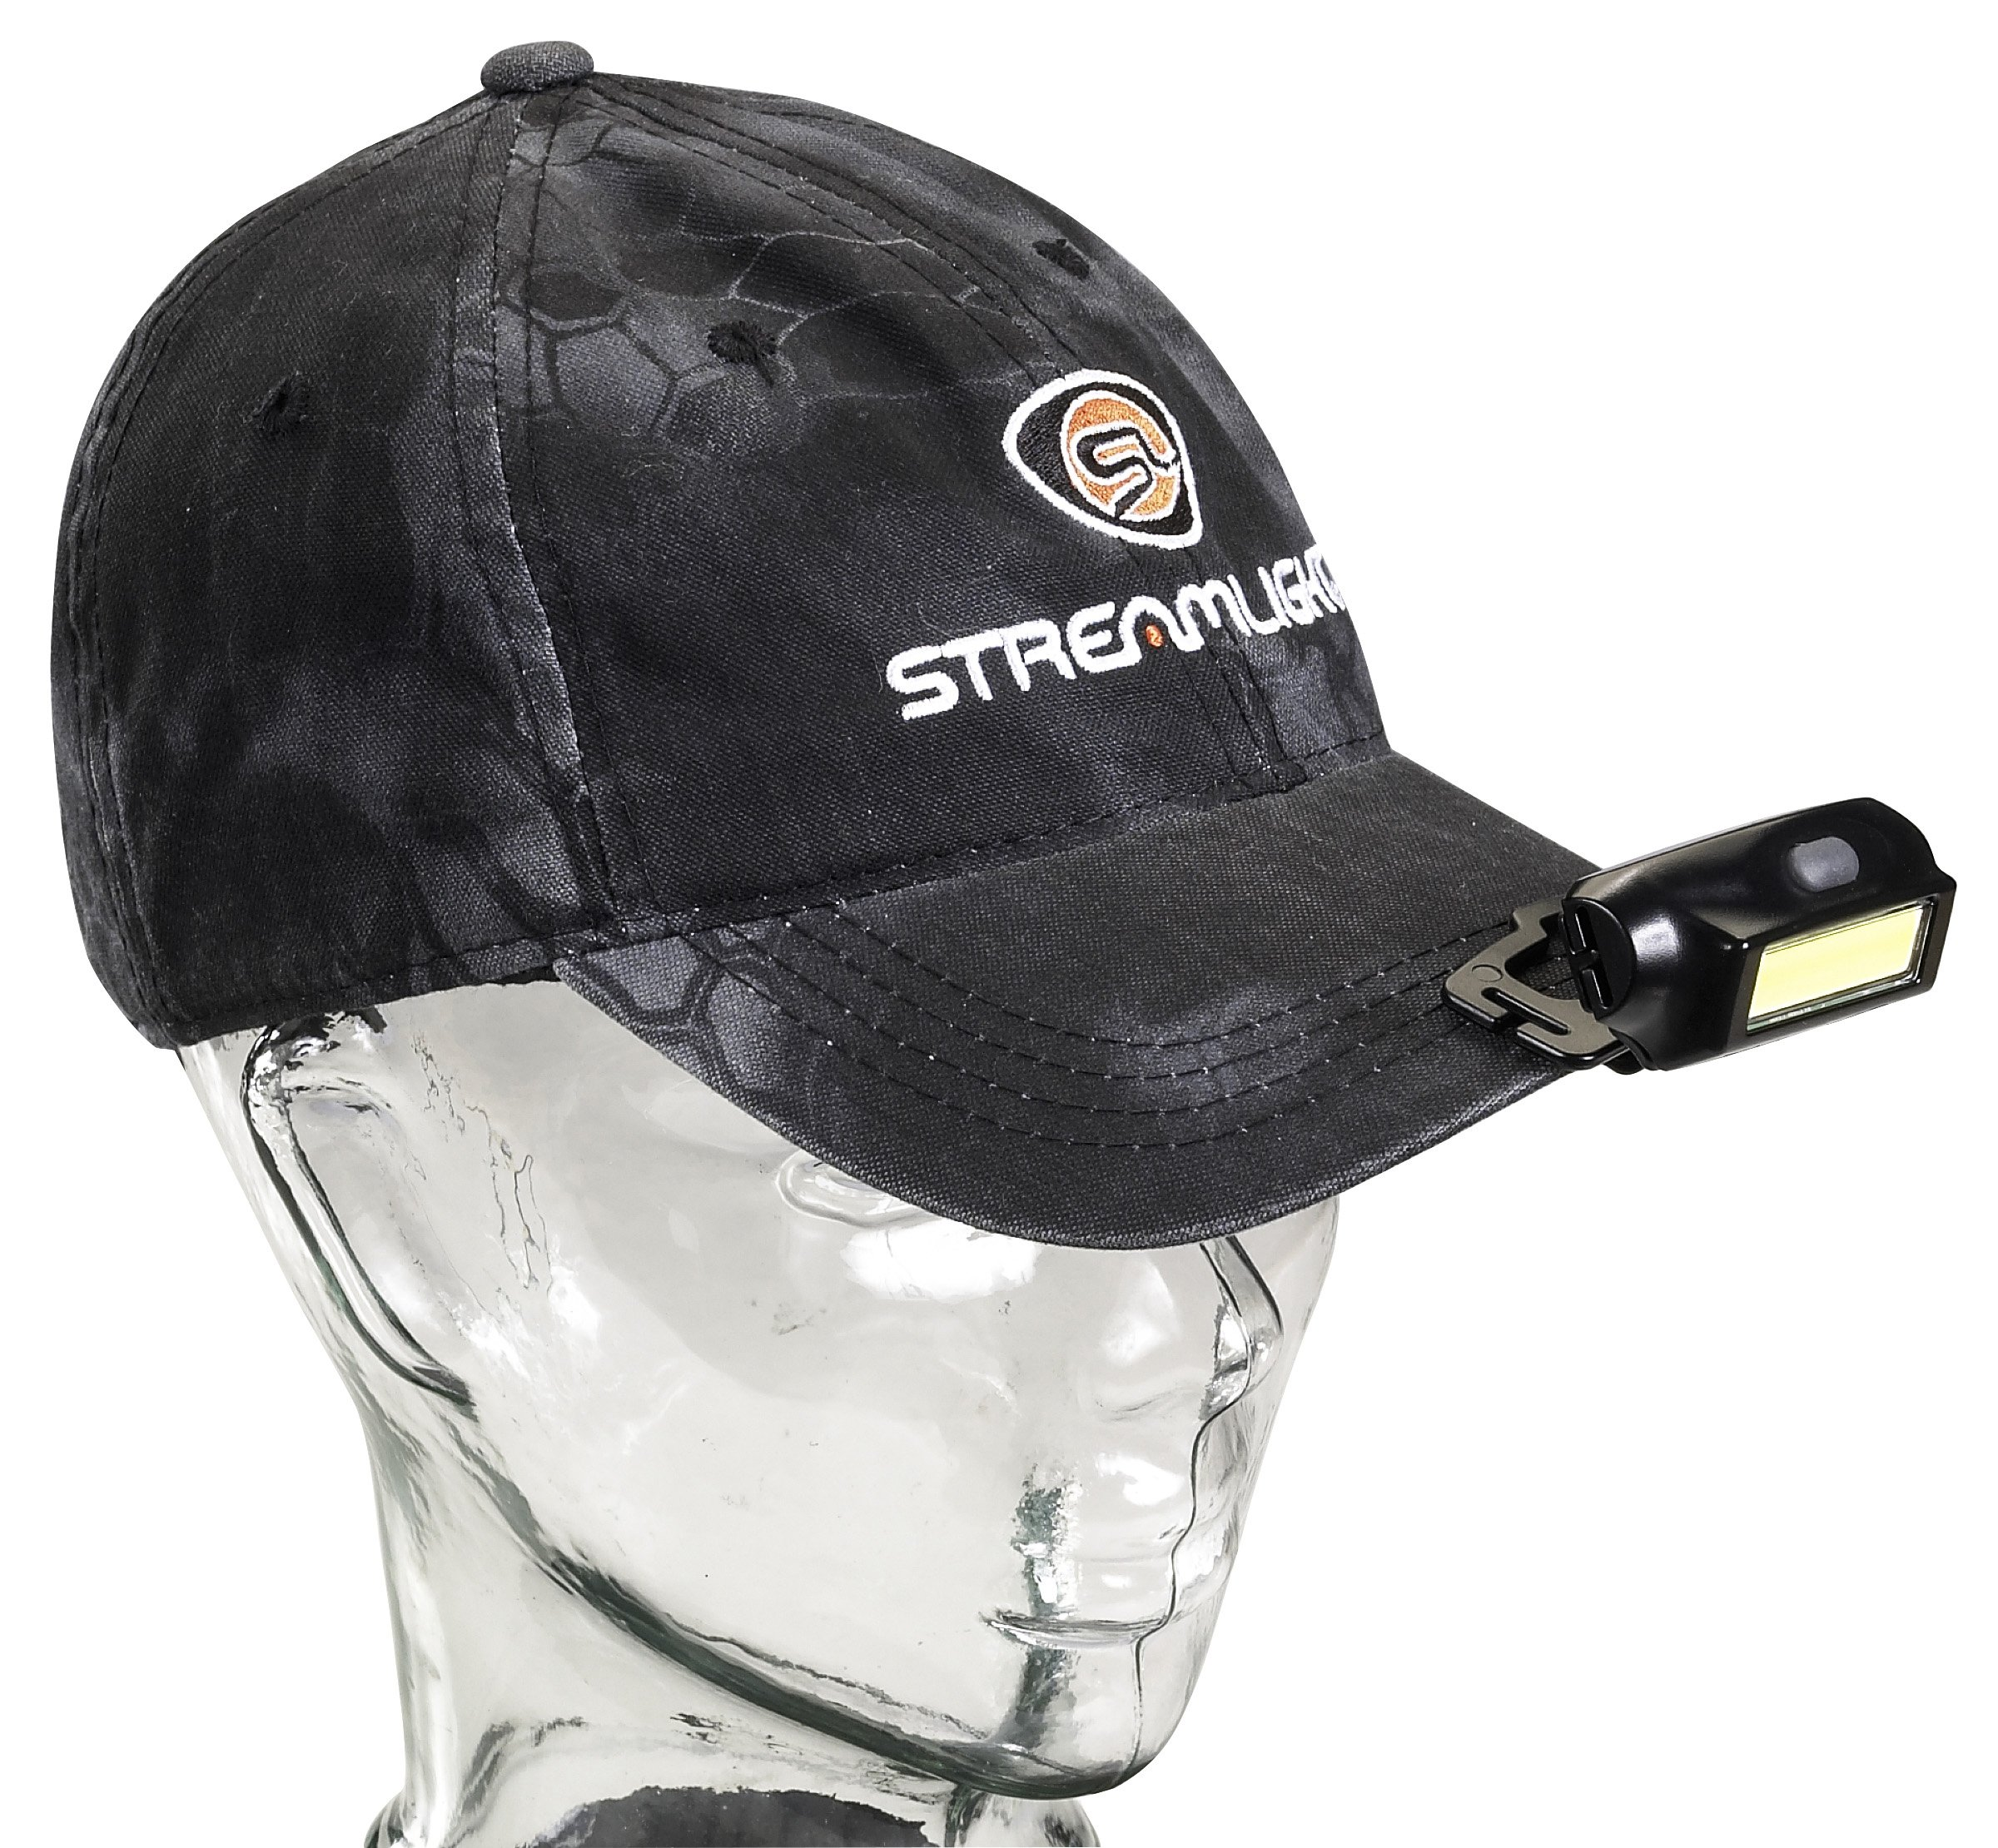 Streamlight 61702 Bandit - includes headstrap, hat clip and USB cord, Black - 180 Lumens by Streamlight (Image #3)